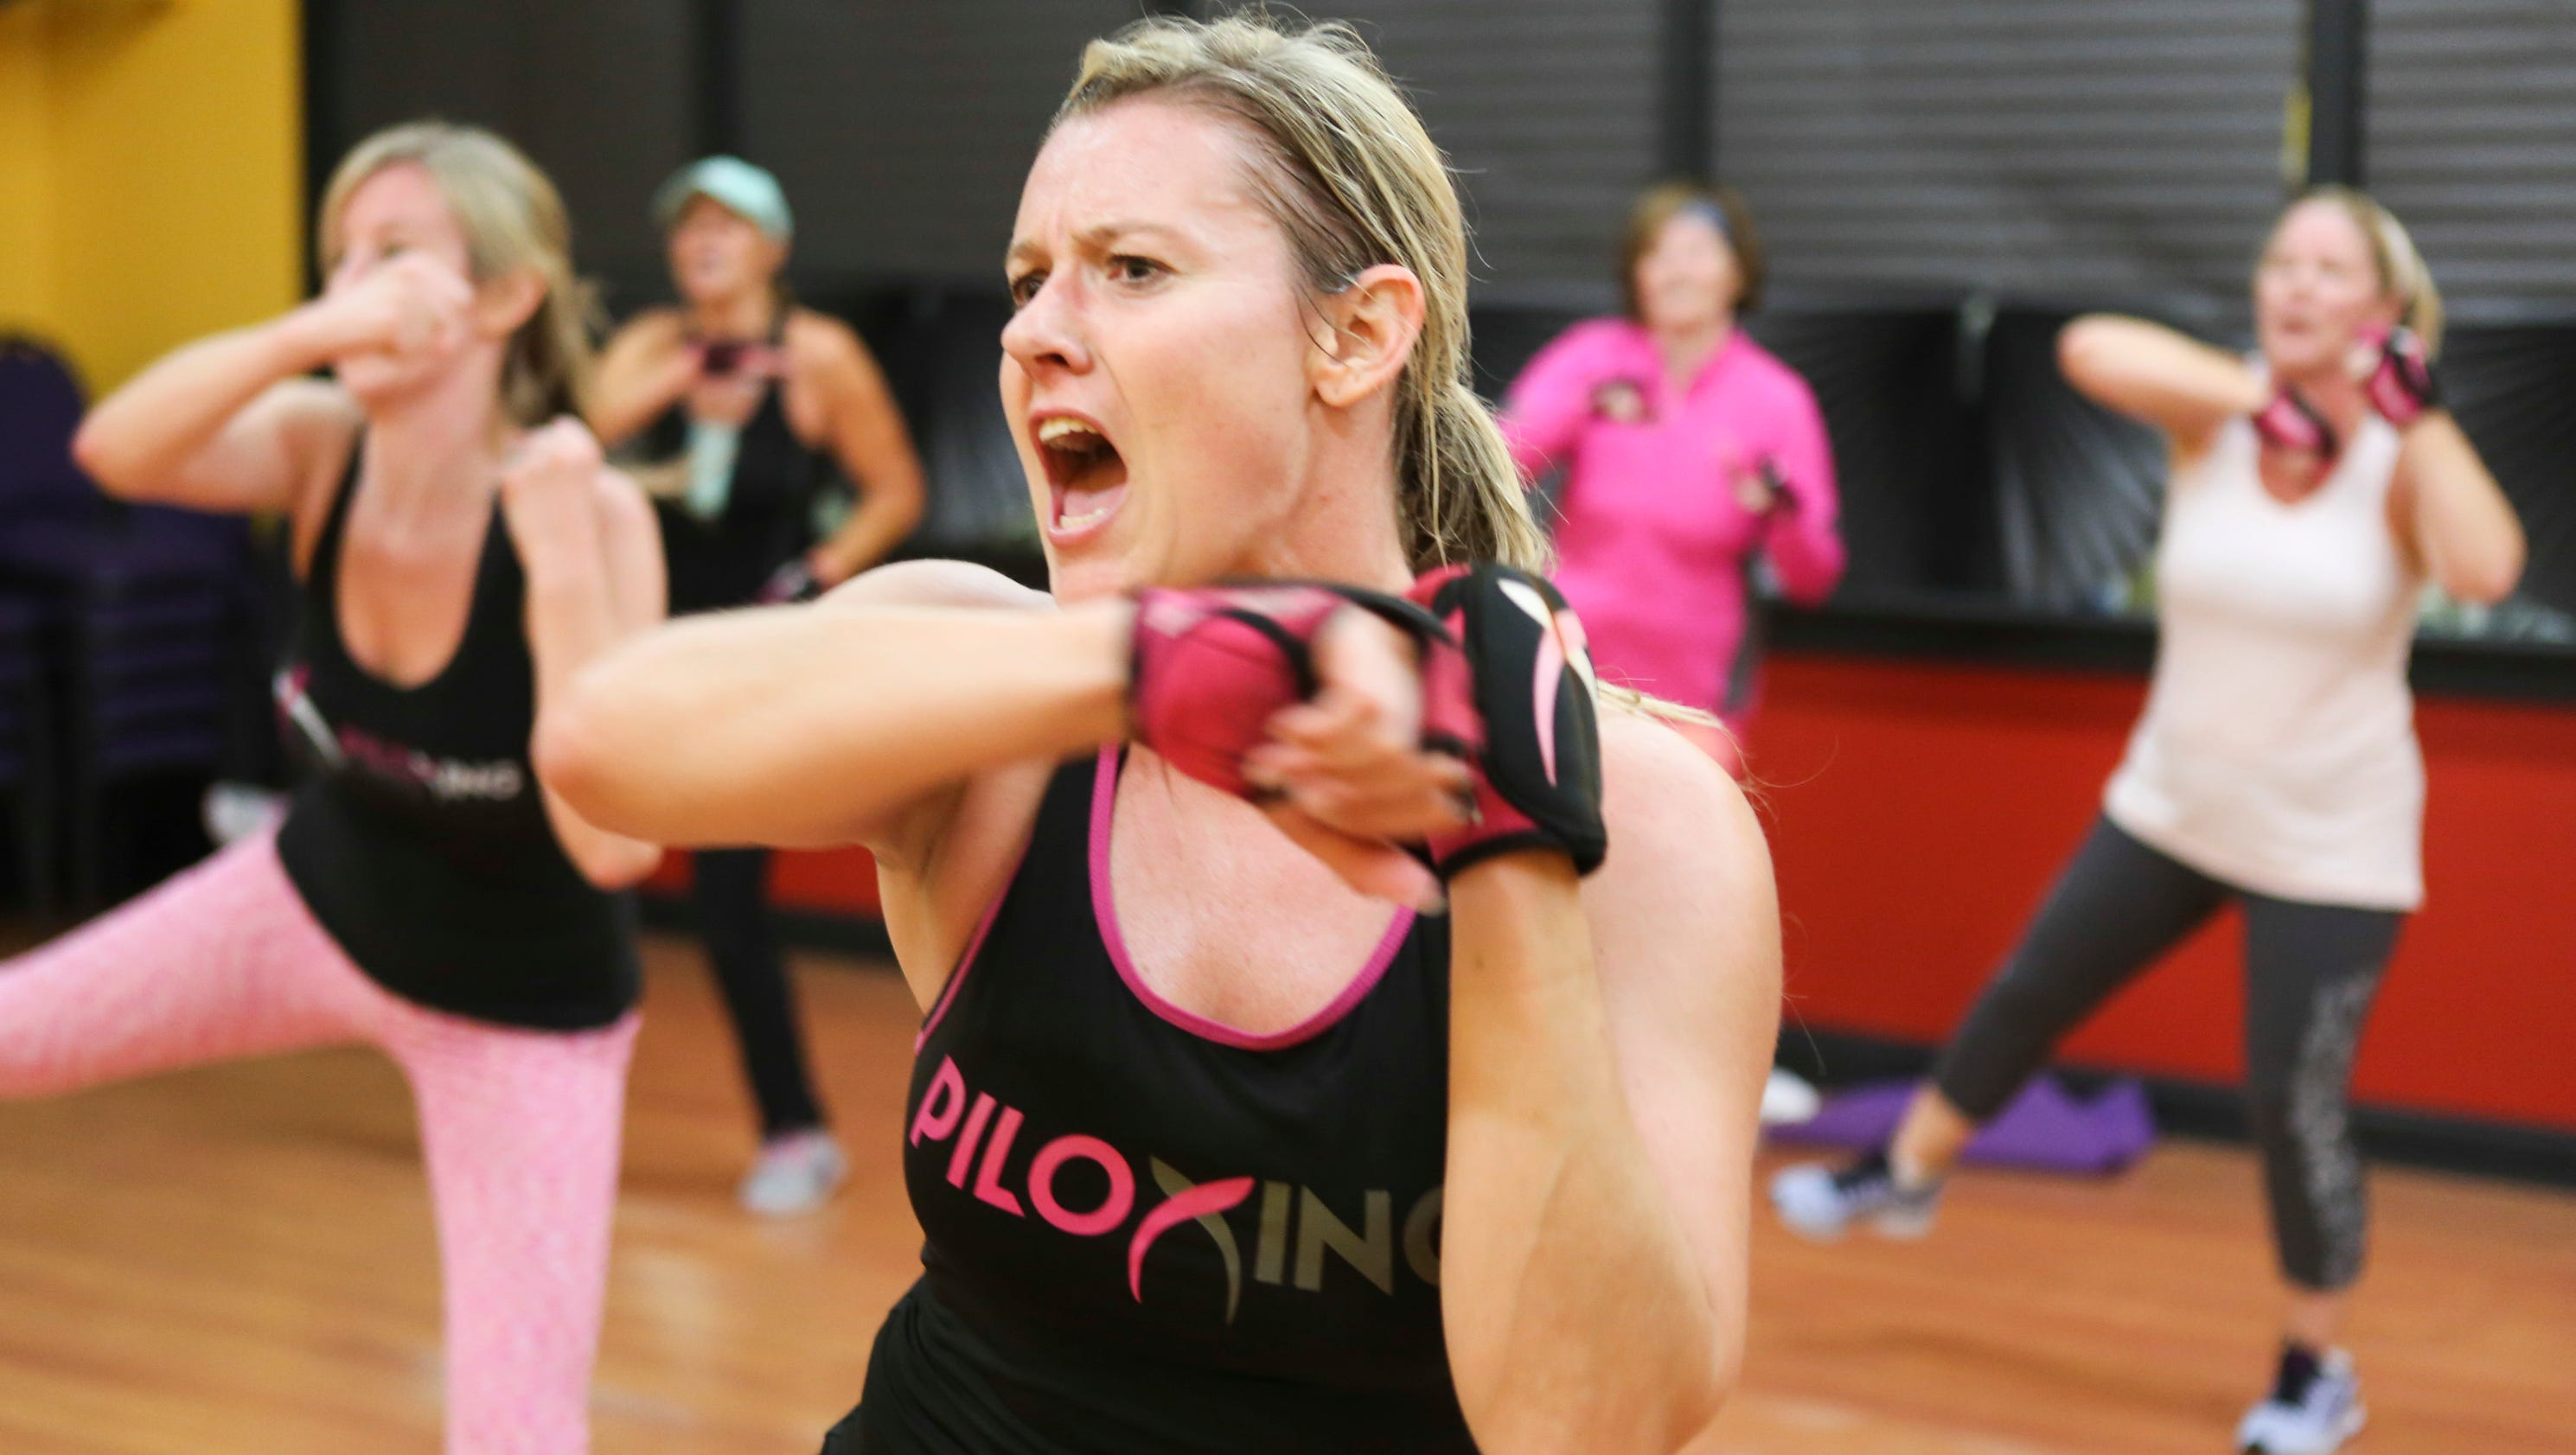 Piloxing combines pilates dance and boxing xflitez Image collections